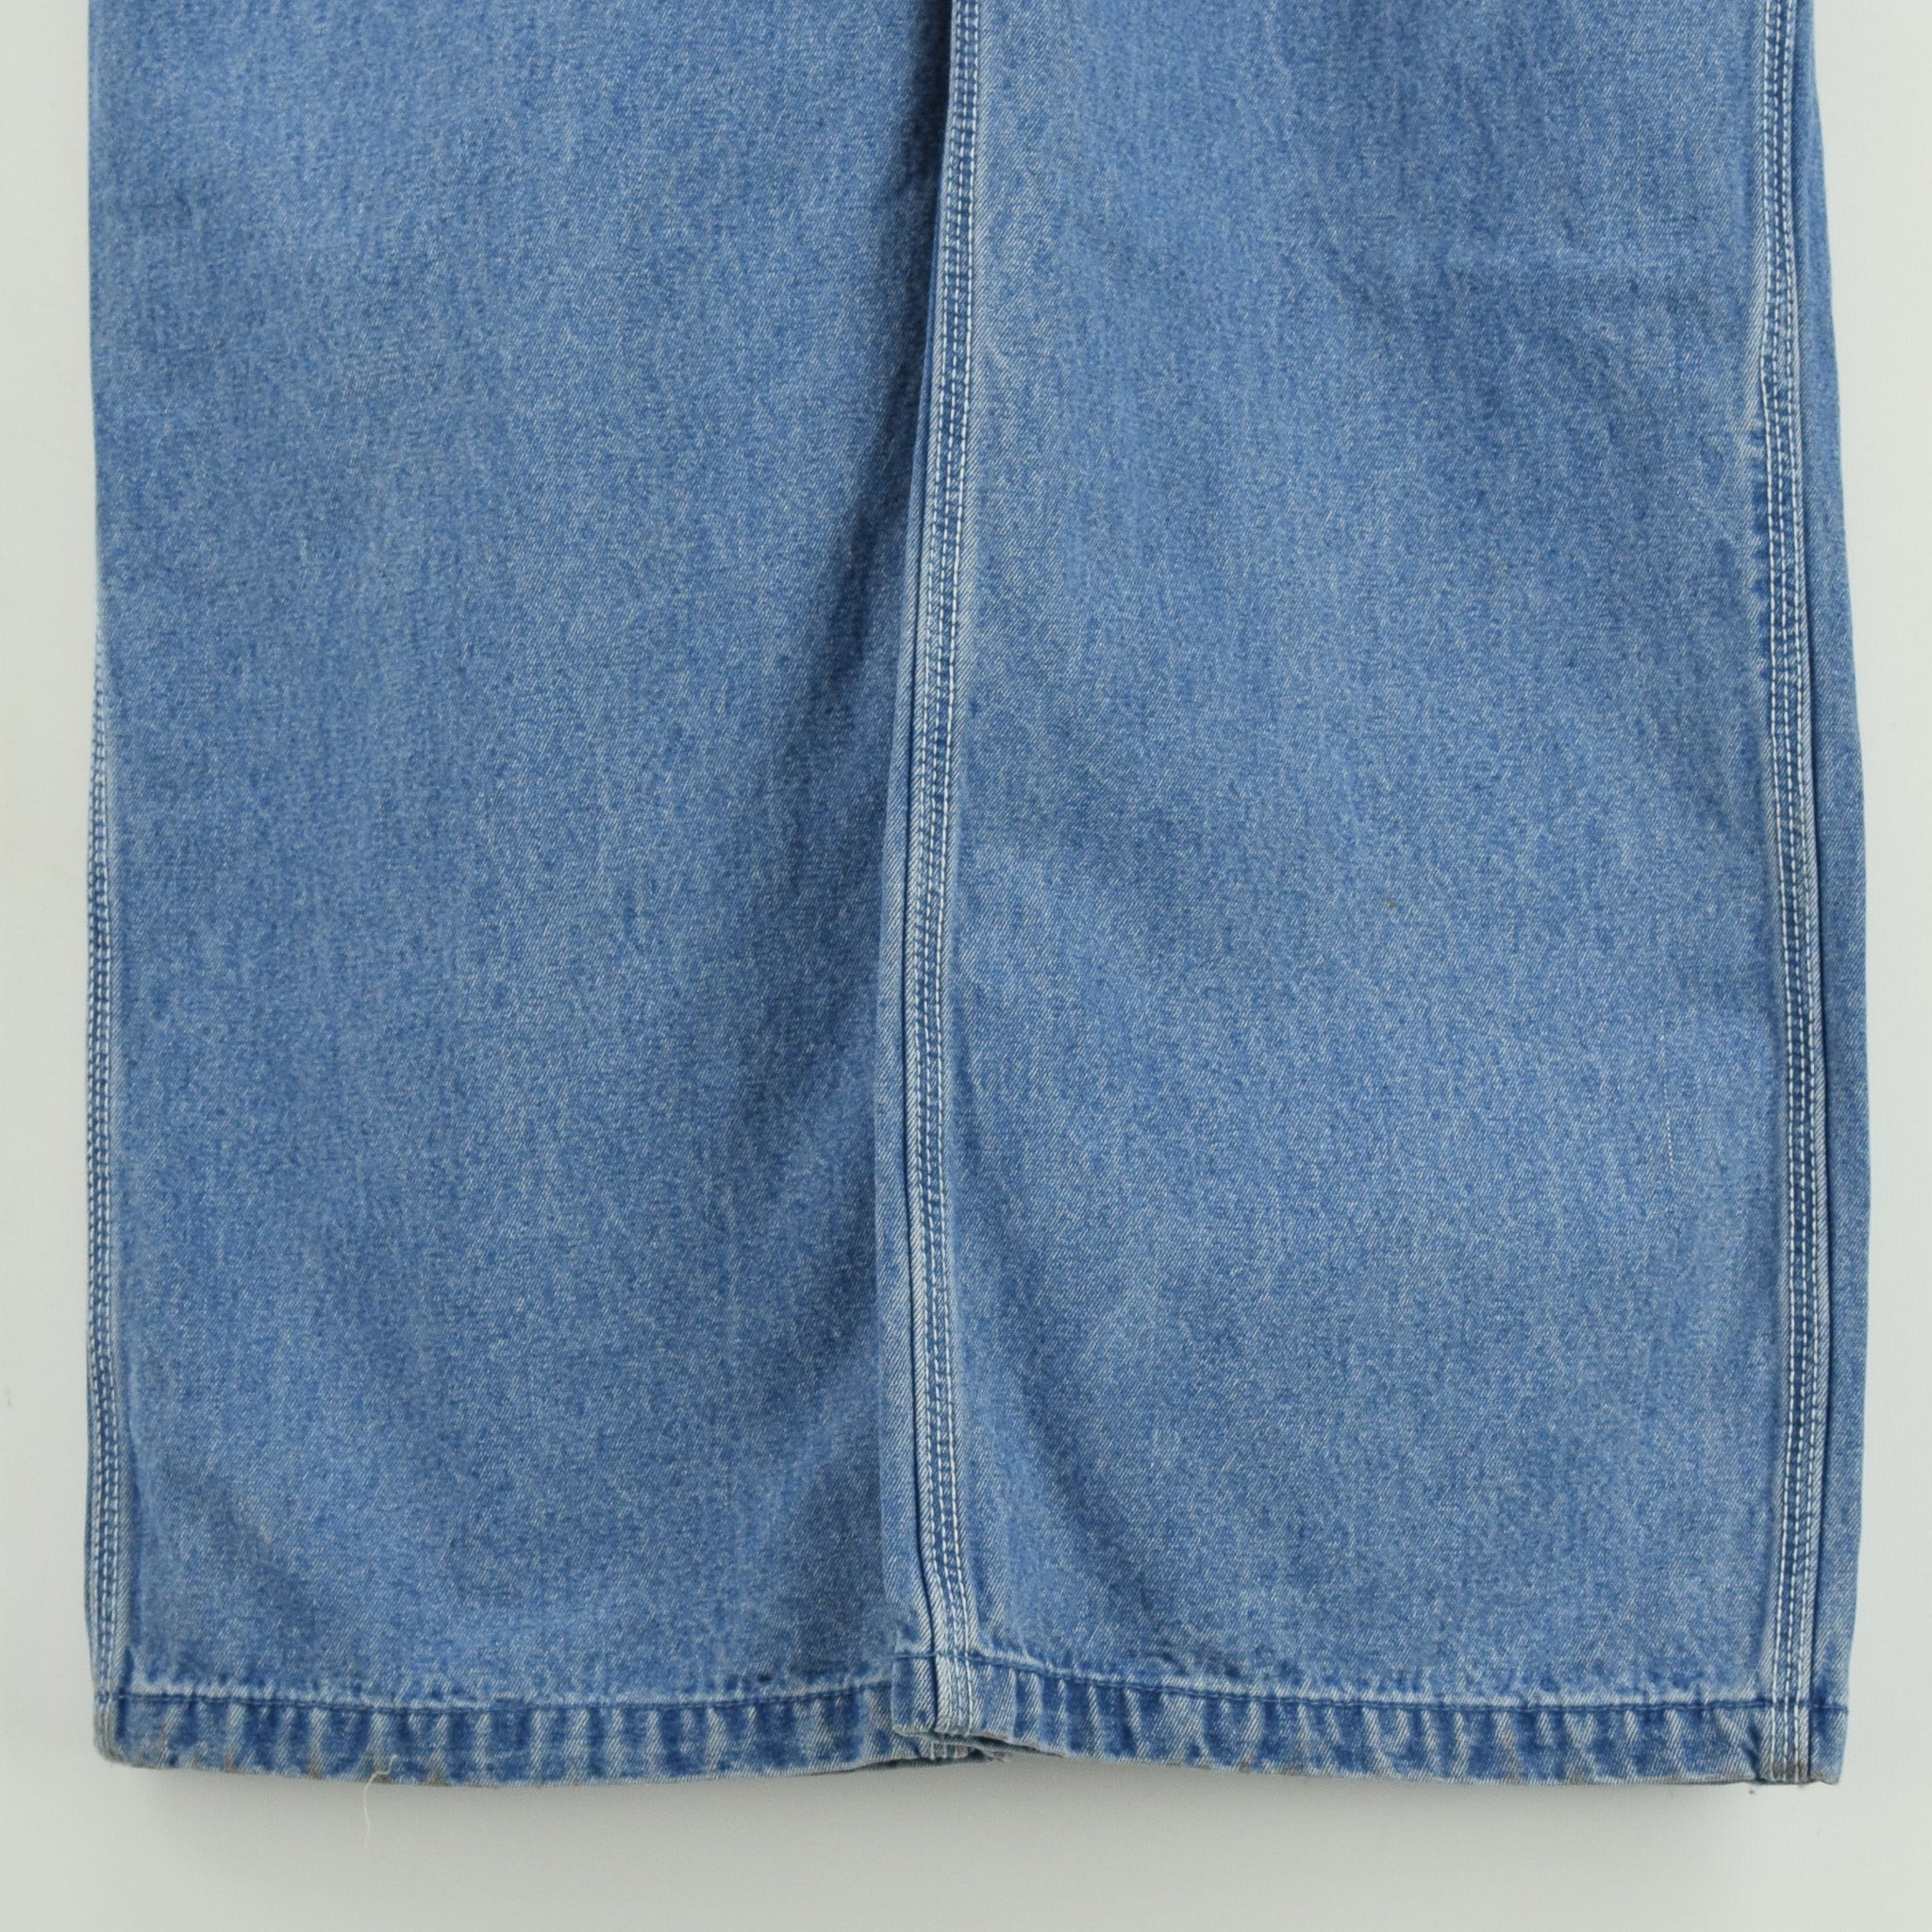 Vintage Big Smith Denim Work Dungarees Blue Bib Overalls Trousers L / XL front legs